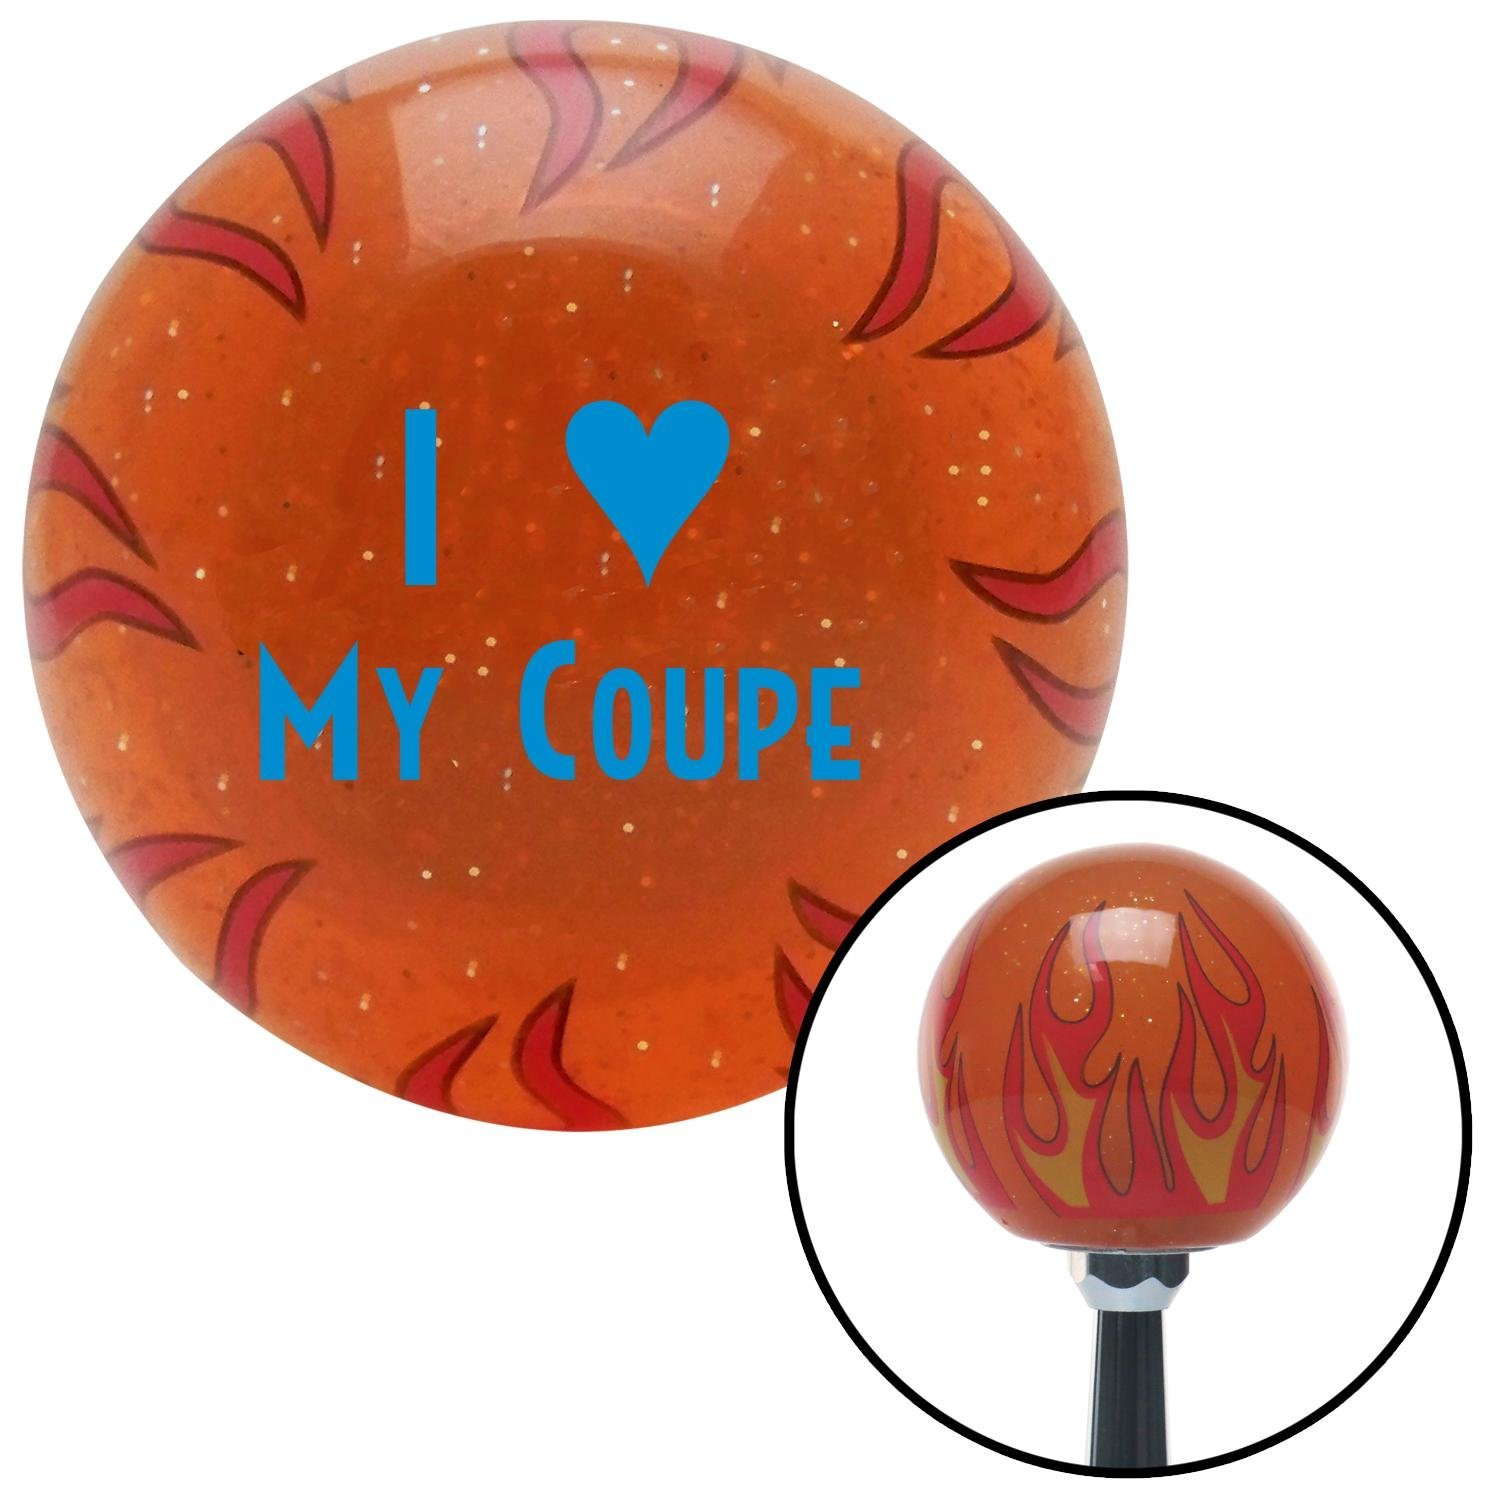 Blue I 3 My Coupe American Shifter 253878 Orange Flame Metal Flake Shift Knob with M16 x 1.5 Insert